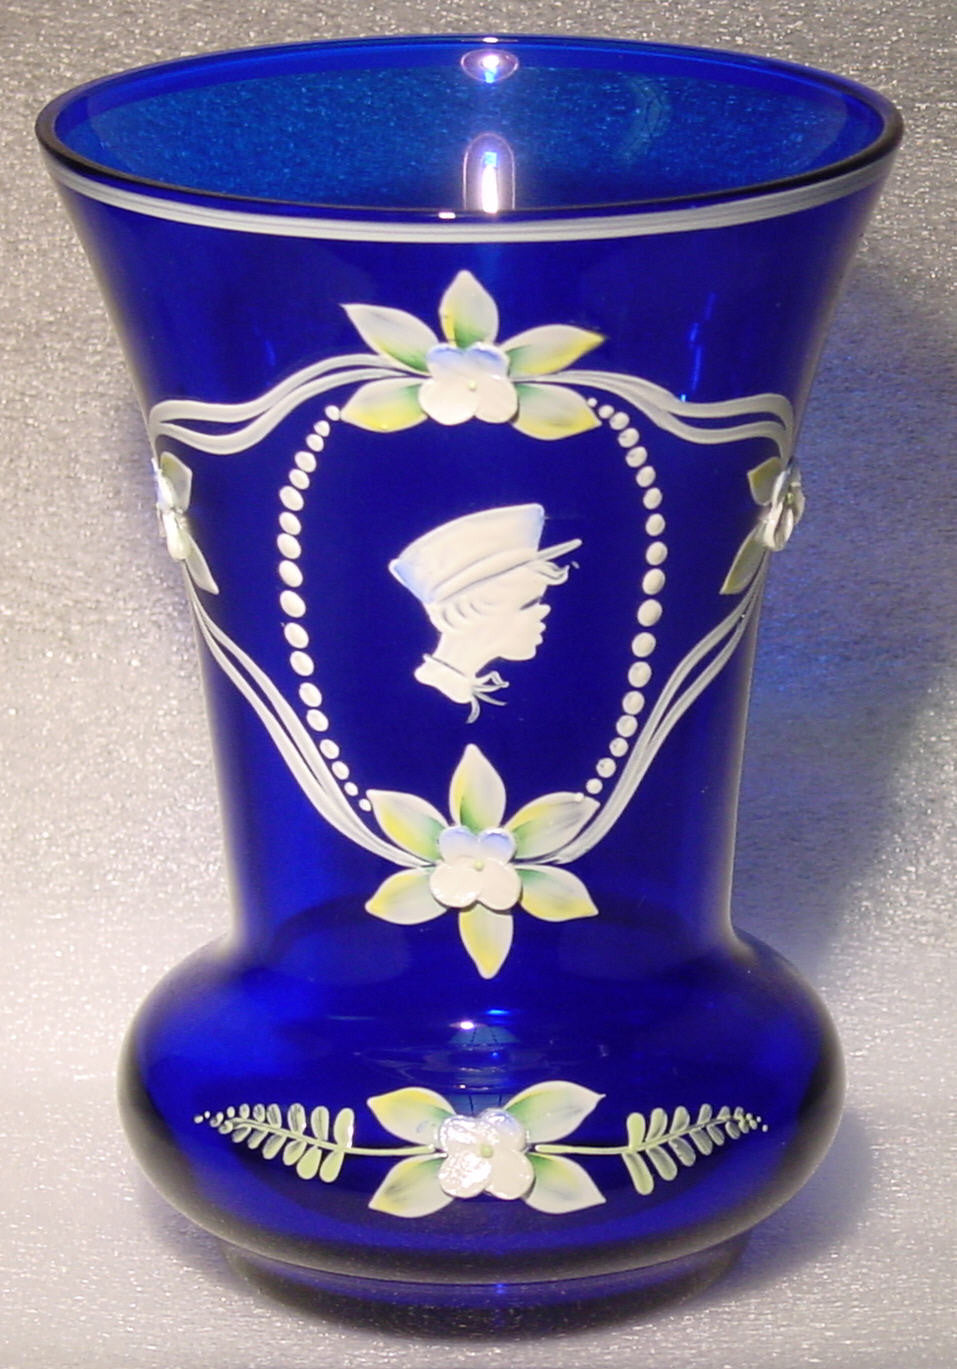 455043 Cobalt Blue W/5 Heavy Flowers & Boy Painted In White In Oval, Bohemian Glassware, Kosherak, - ReeceFurniture.com - Free Local Pick Ups: Frankenmuth, MI, Indianapolis, IN, Chicago Ridge, IL, and Detroit, MI